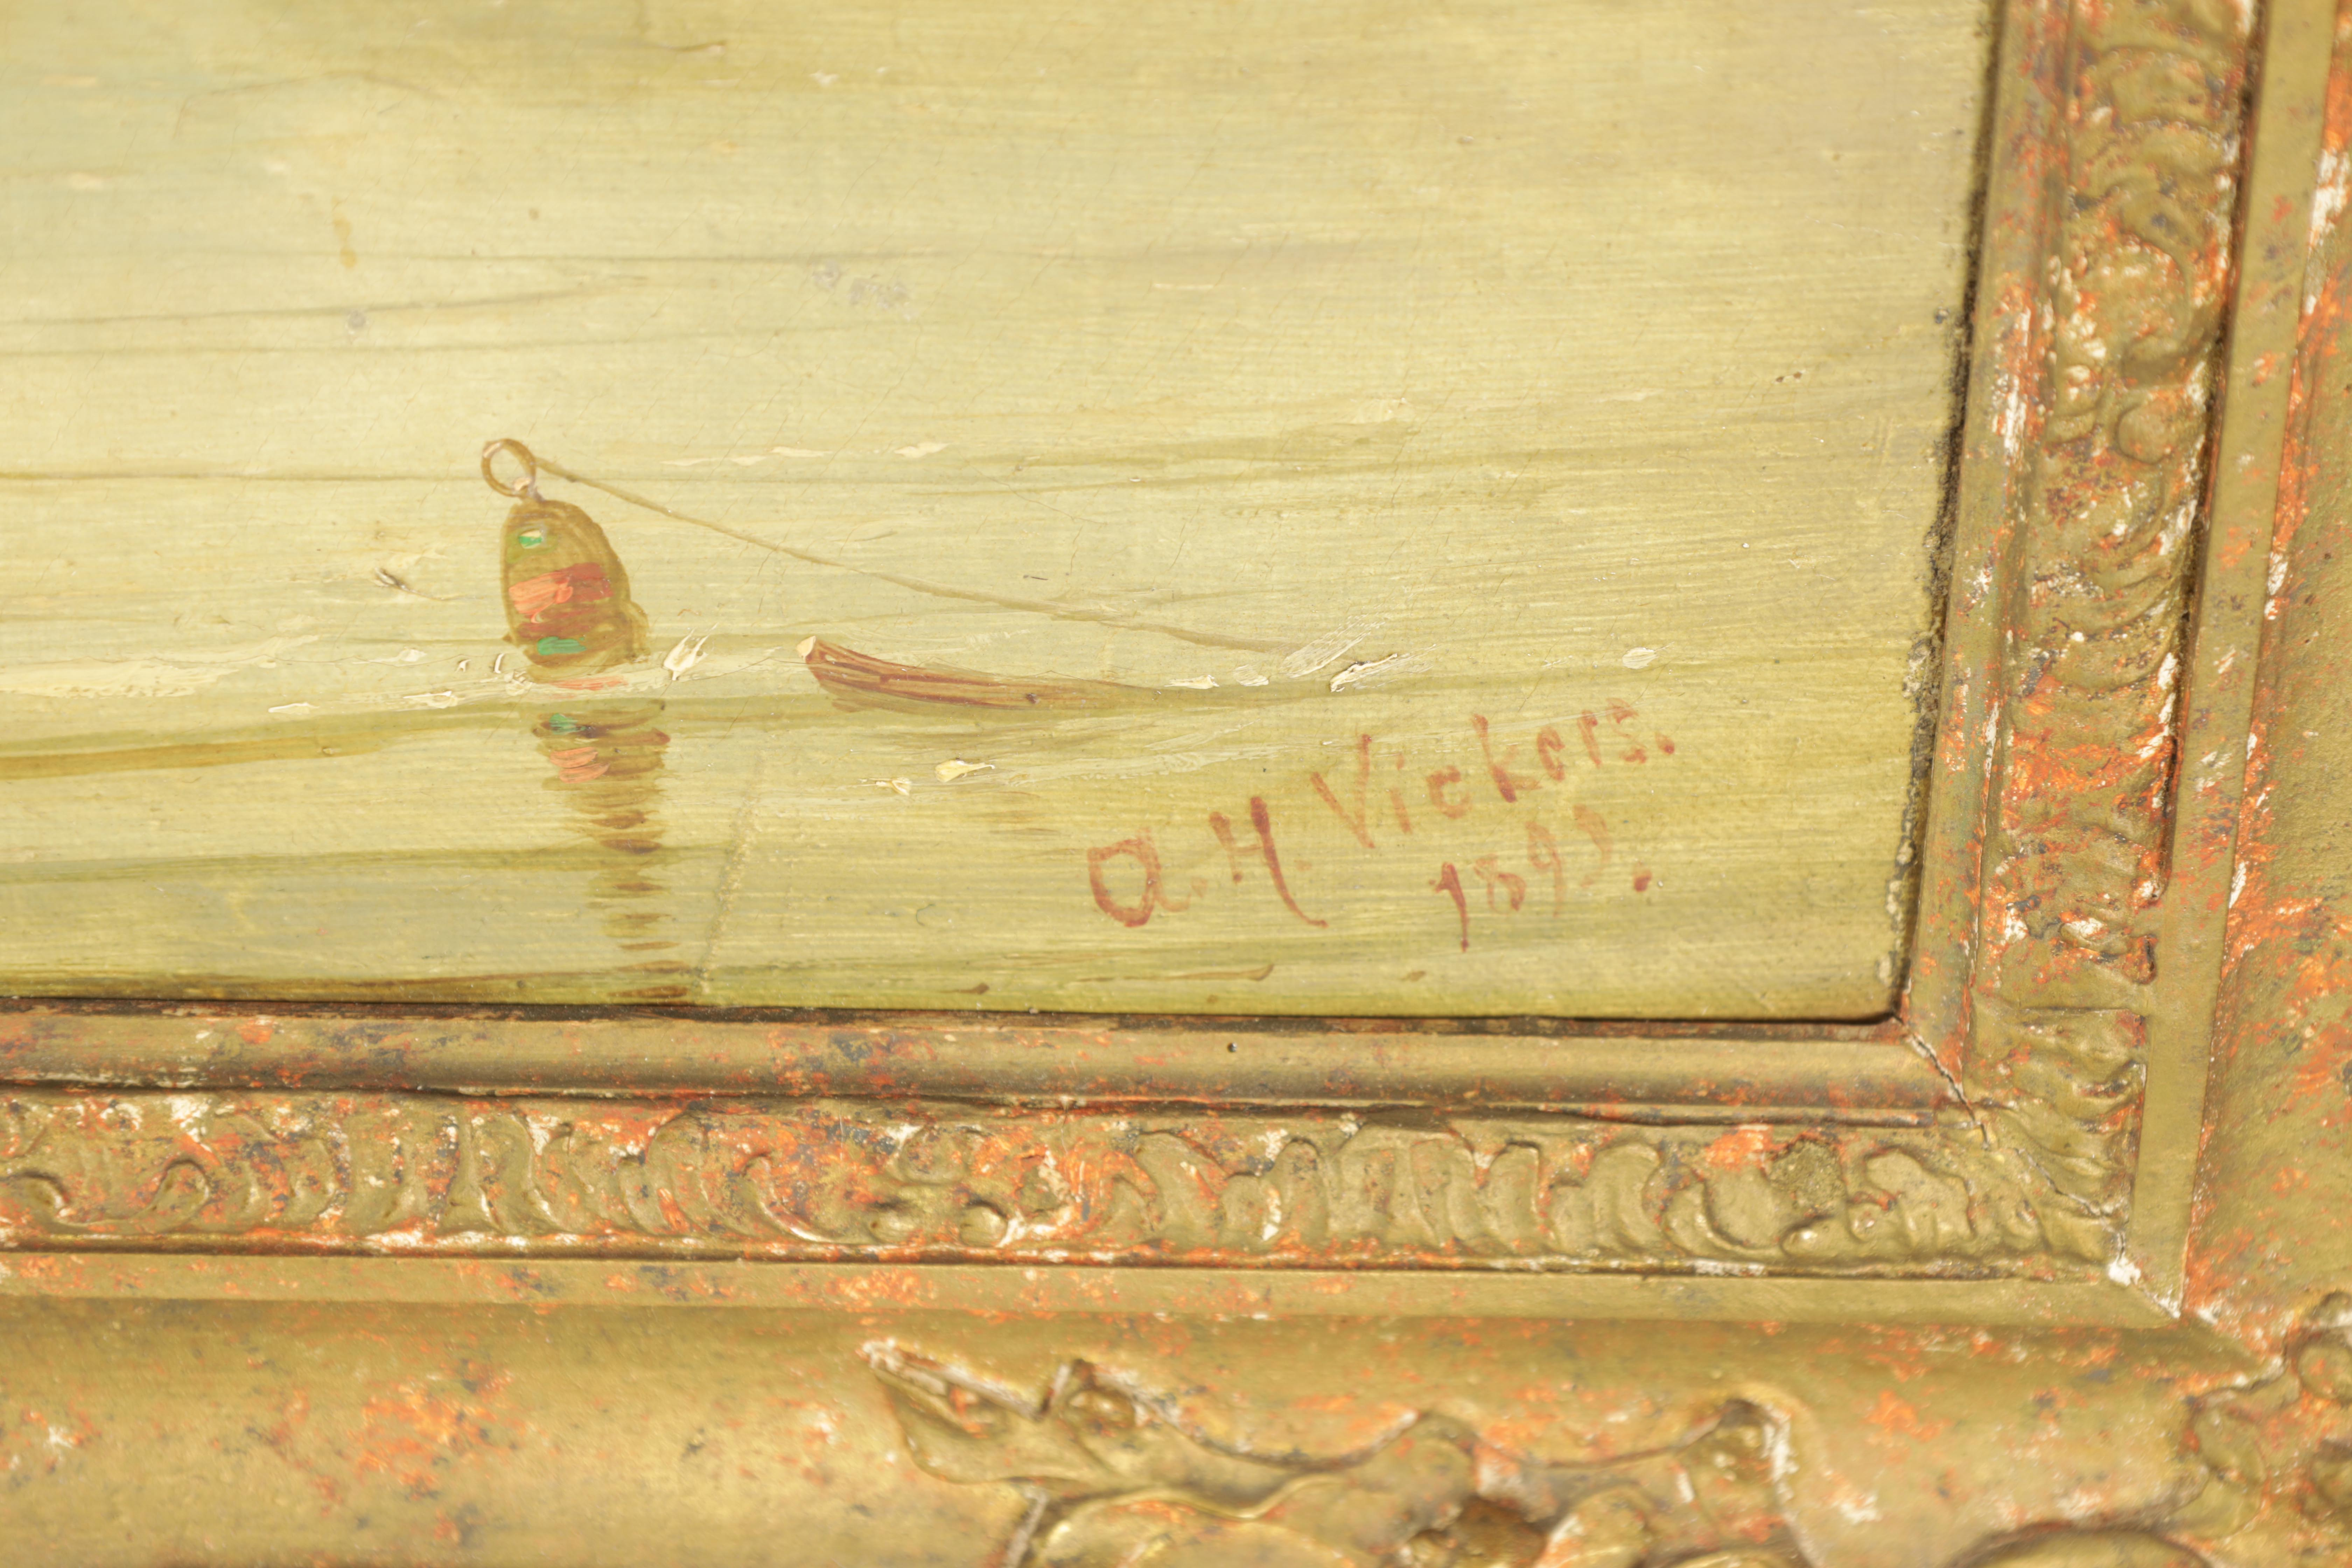 ALFRED H. VICKERS A PAIR OF MID 19TH CENTURY OILS ON CANVAS depicting river landscapes - signed - Image 4 of 8